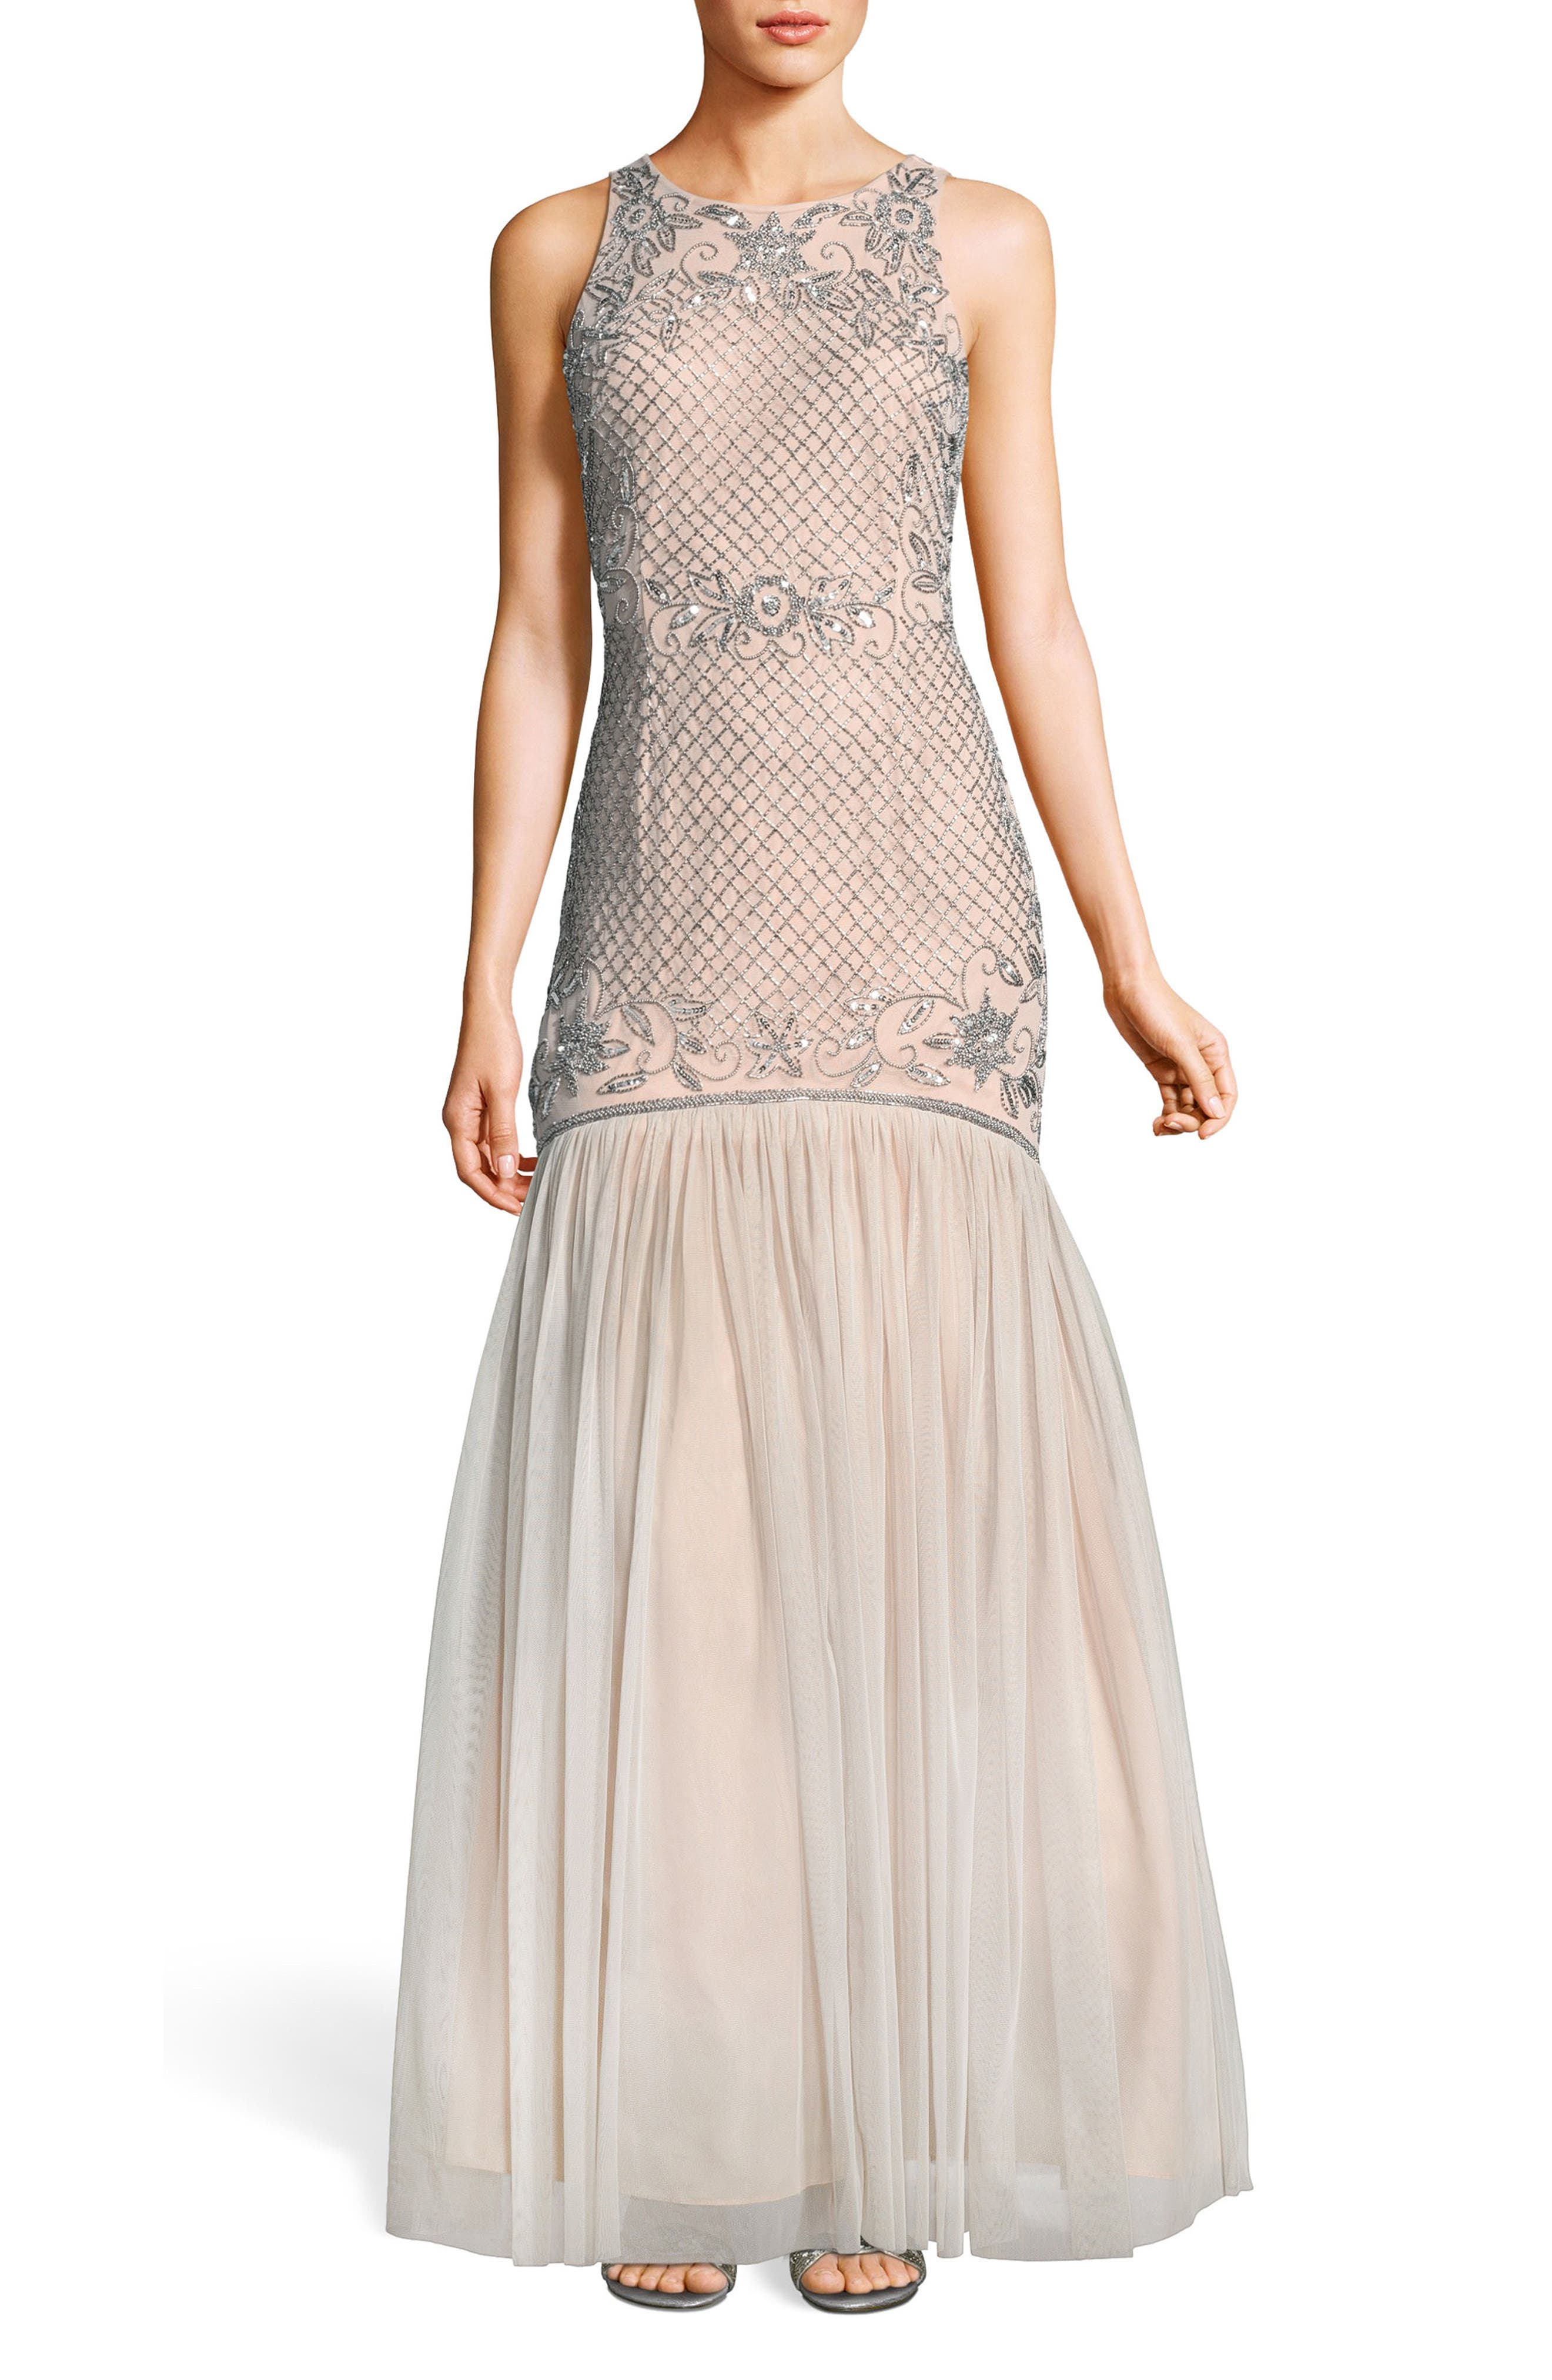 Beaded Tulle Trumpet Gown,                         Main,                         color, Silver/ Nude